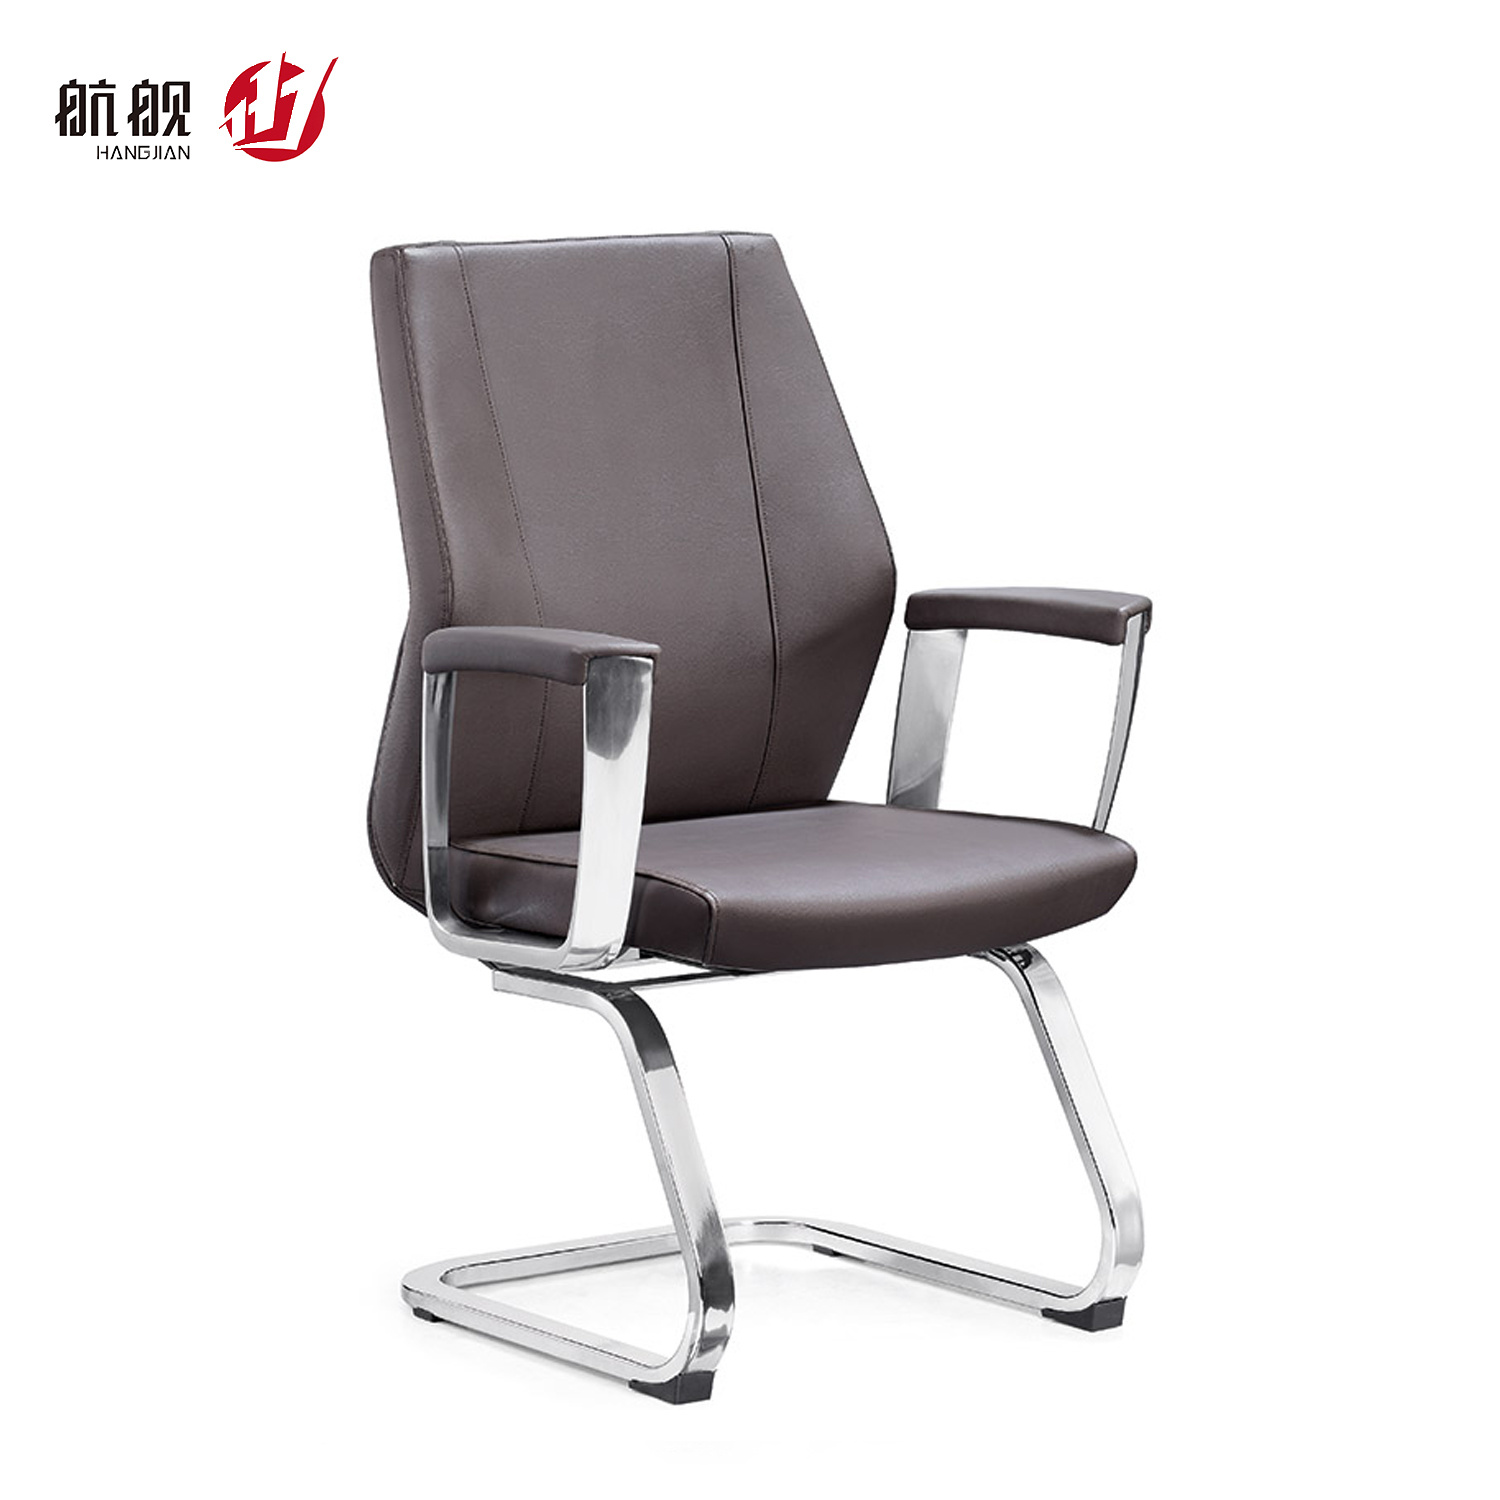 China Middle Back Leather Visitor Executive Office Chairs Without Wheels For Conference Room Guest Chair China Modern Chair Swivel Chair